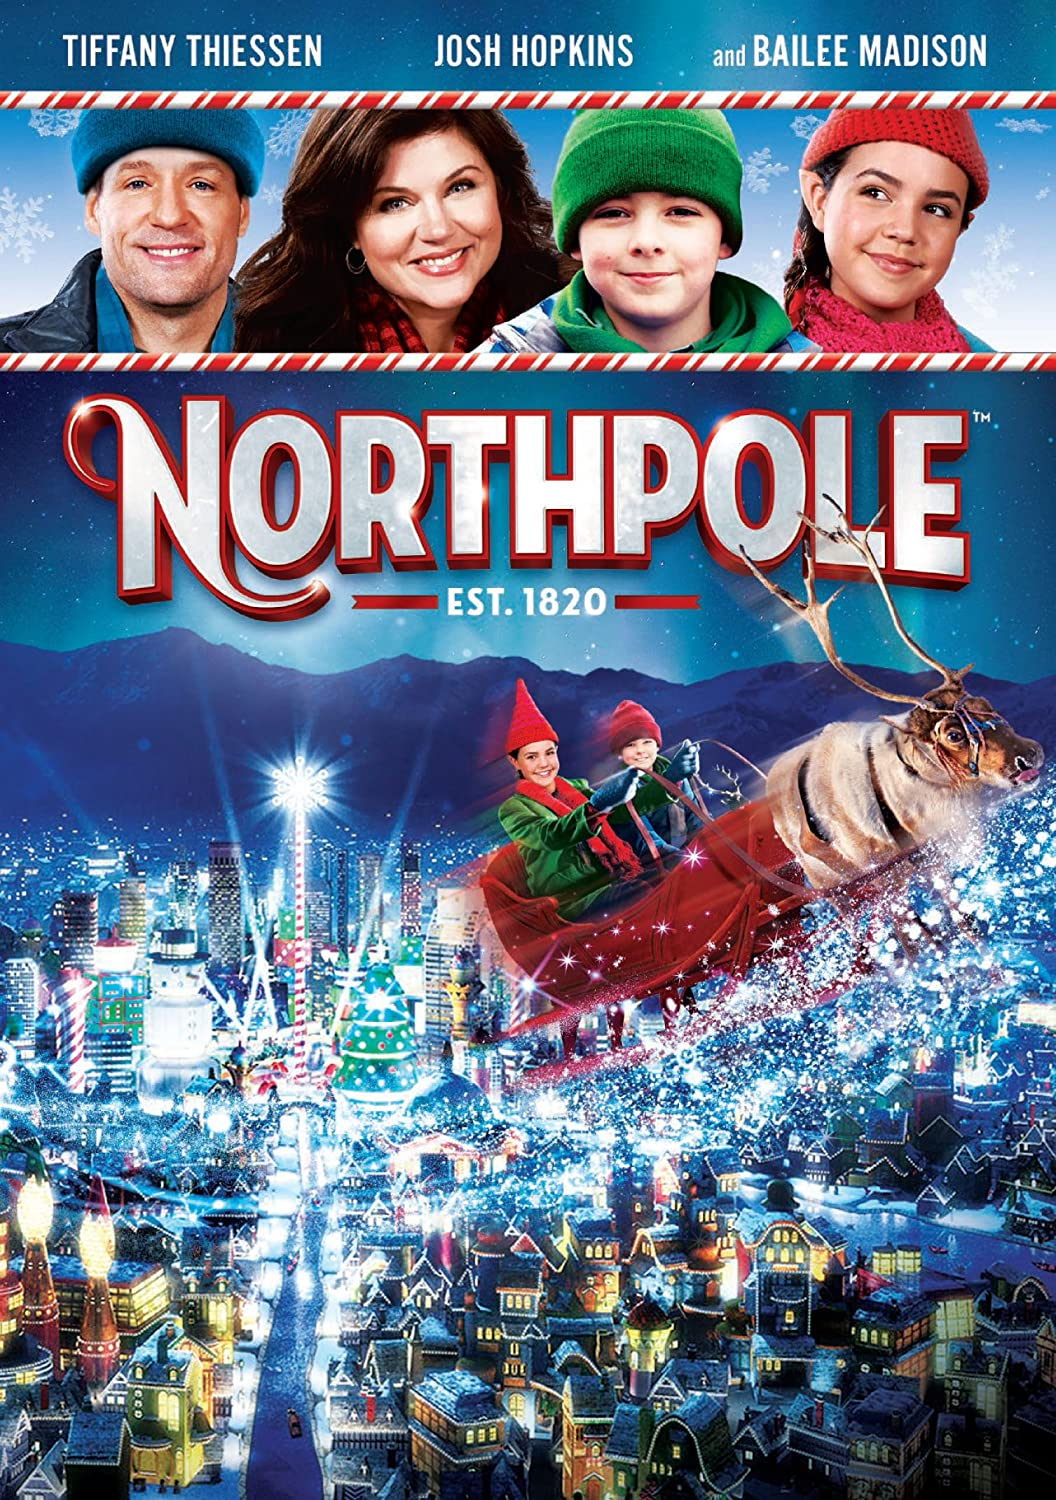 Amazon.com: Northpole: Max Charles, Josh Hopkins, Tiffani Theissen ...